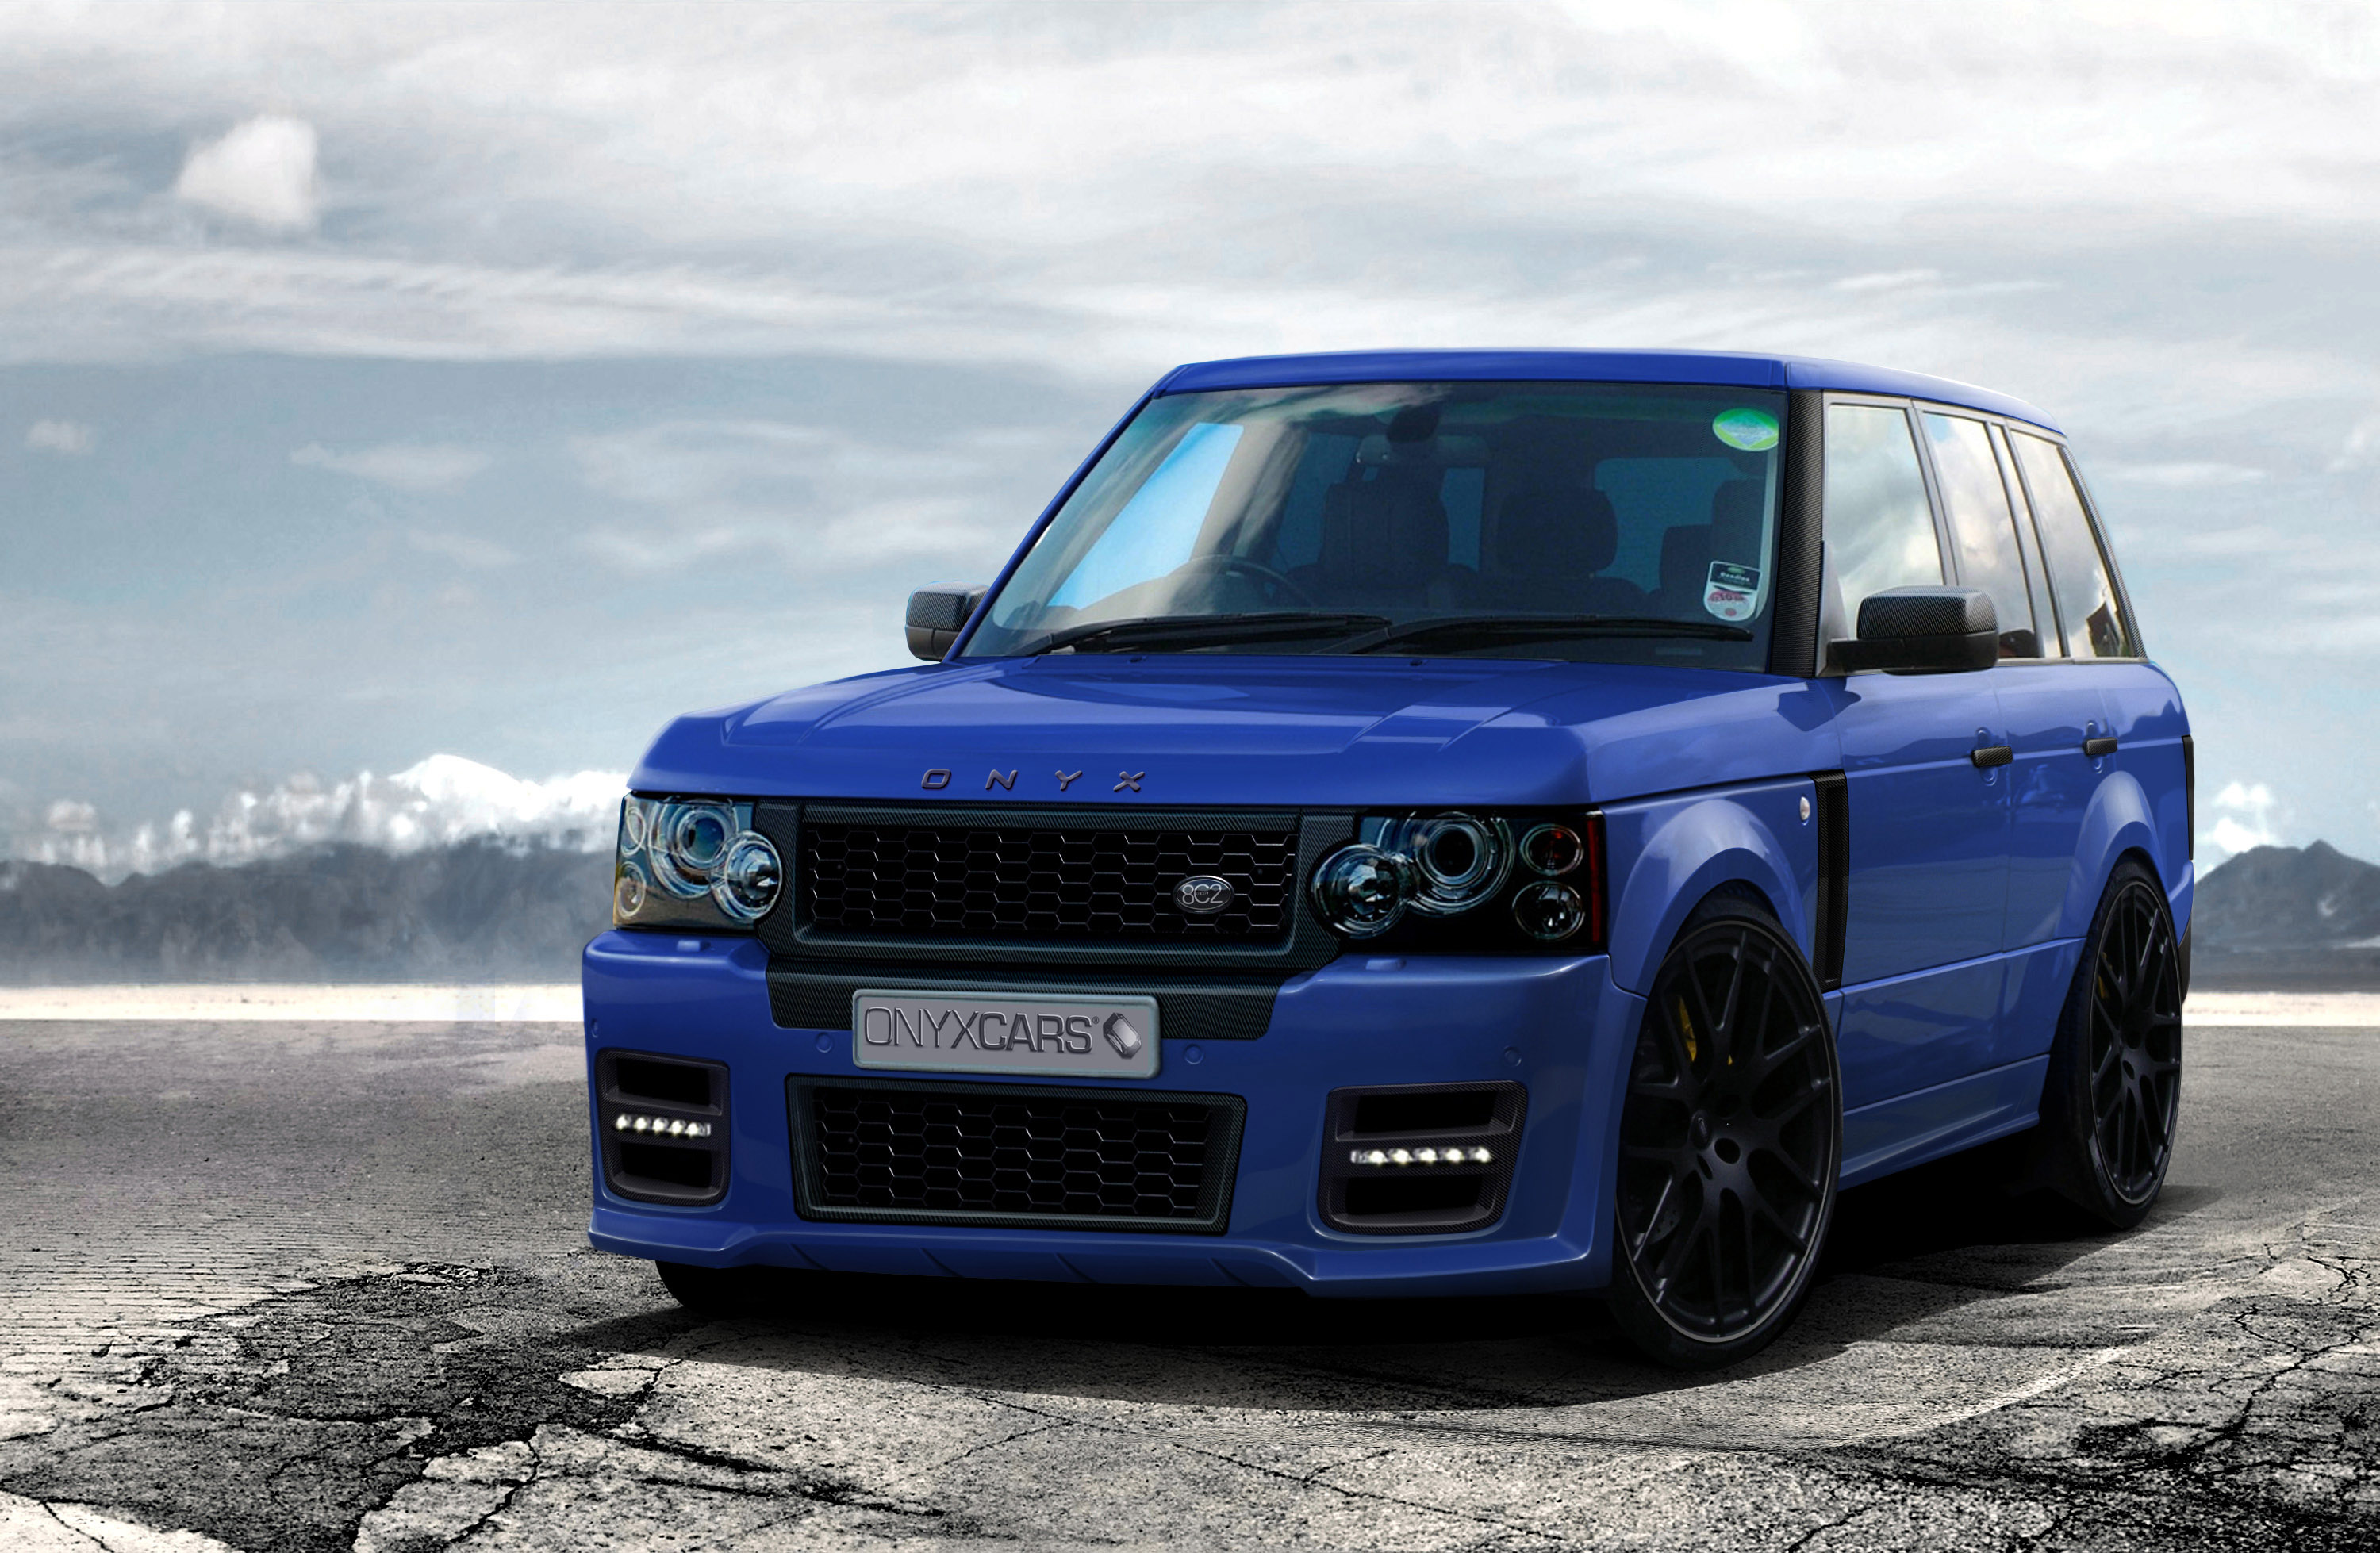 ONYX Range Rover Voque Platinum V Car Pictures Wallpapers Backgrounds